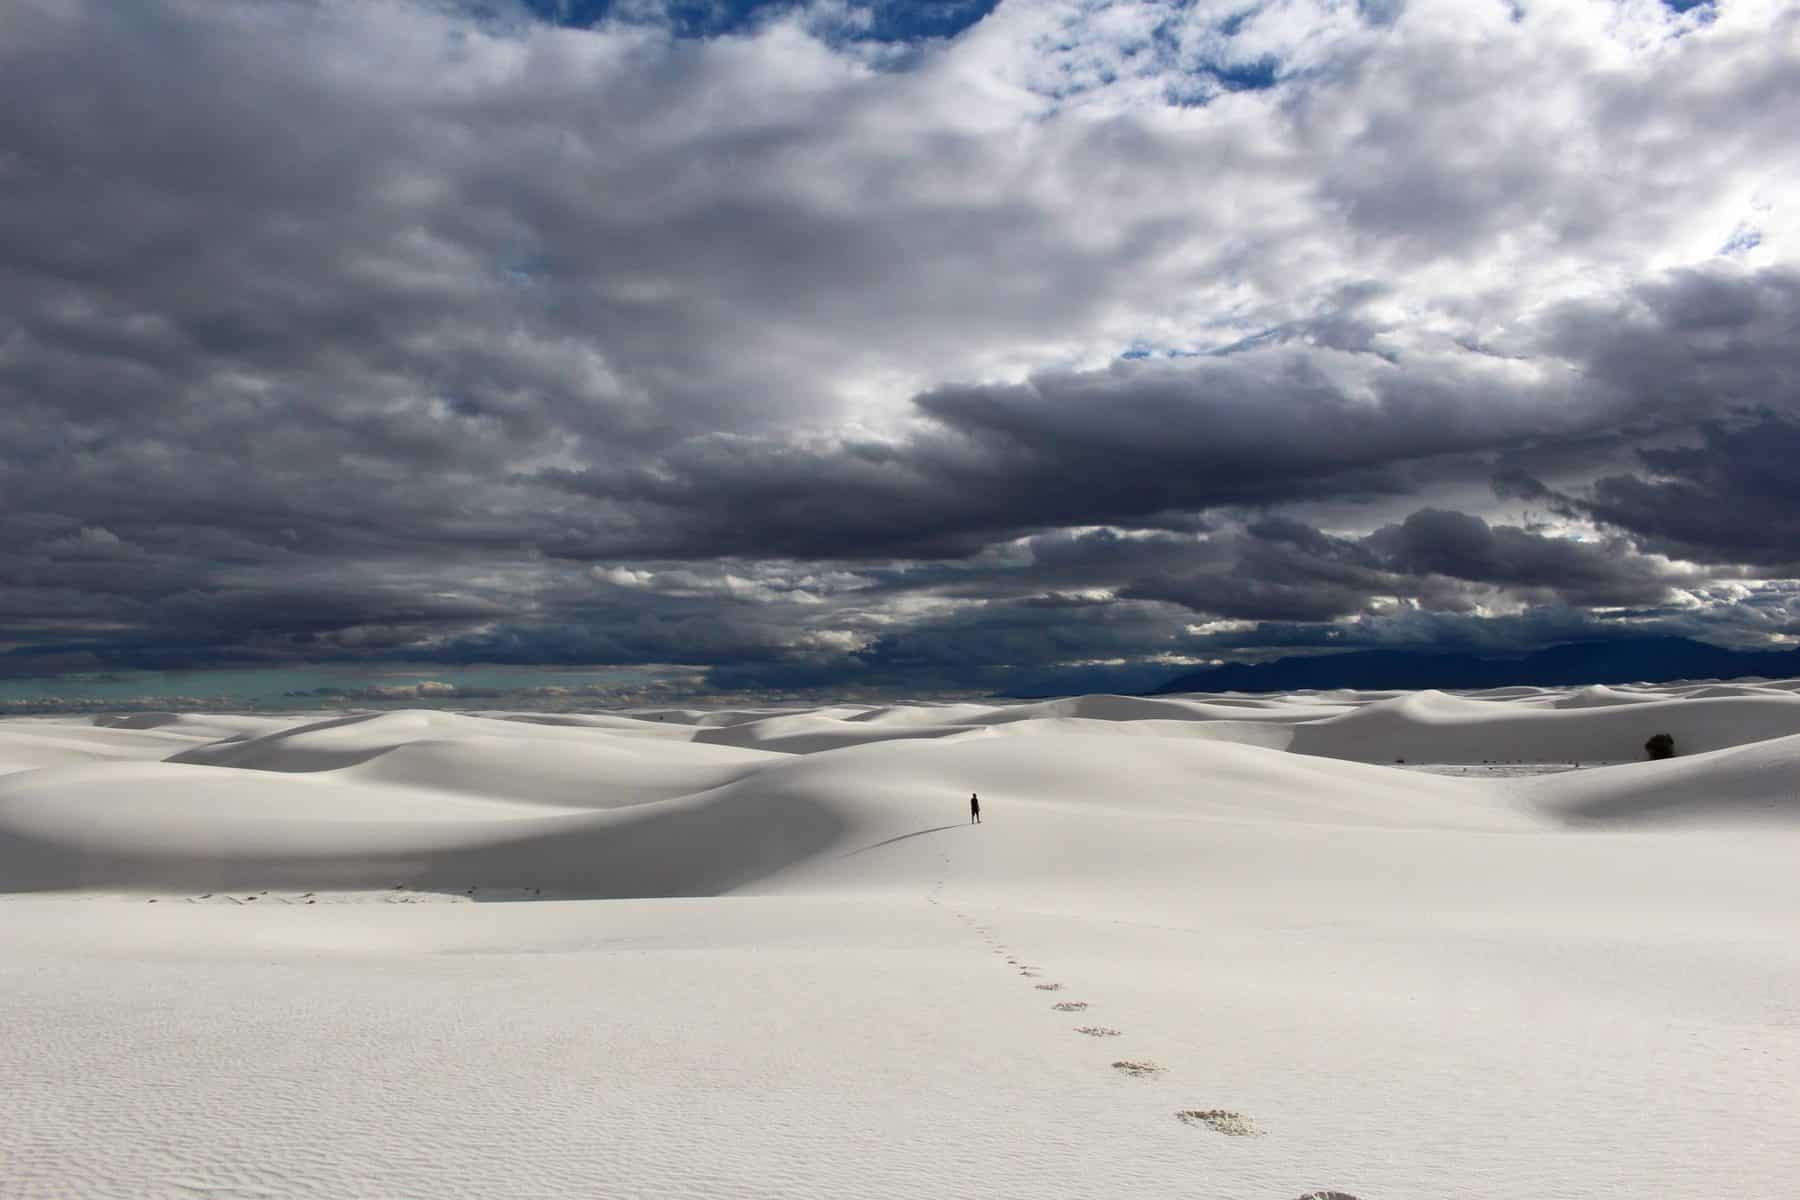 White Sands National Monument with a Storm